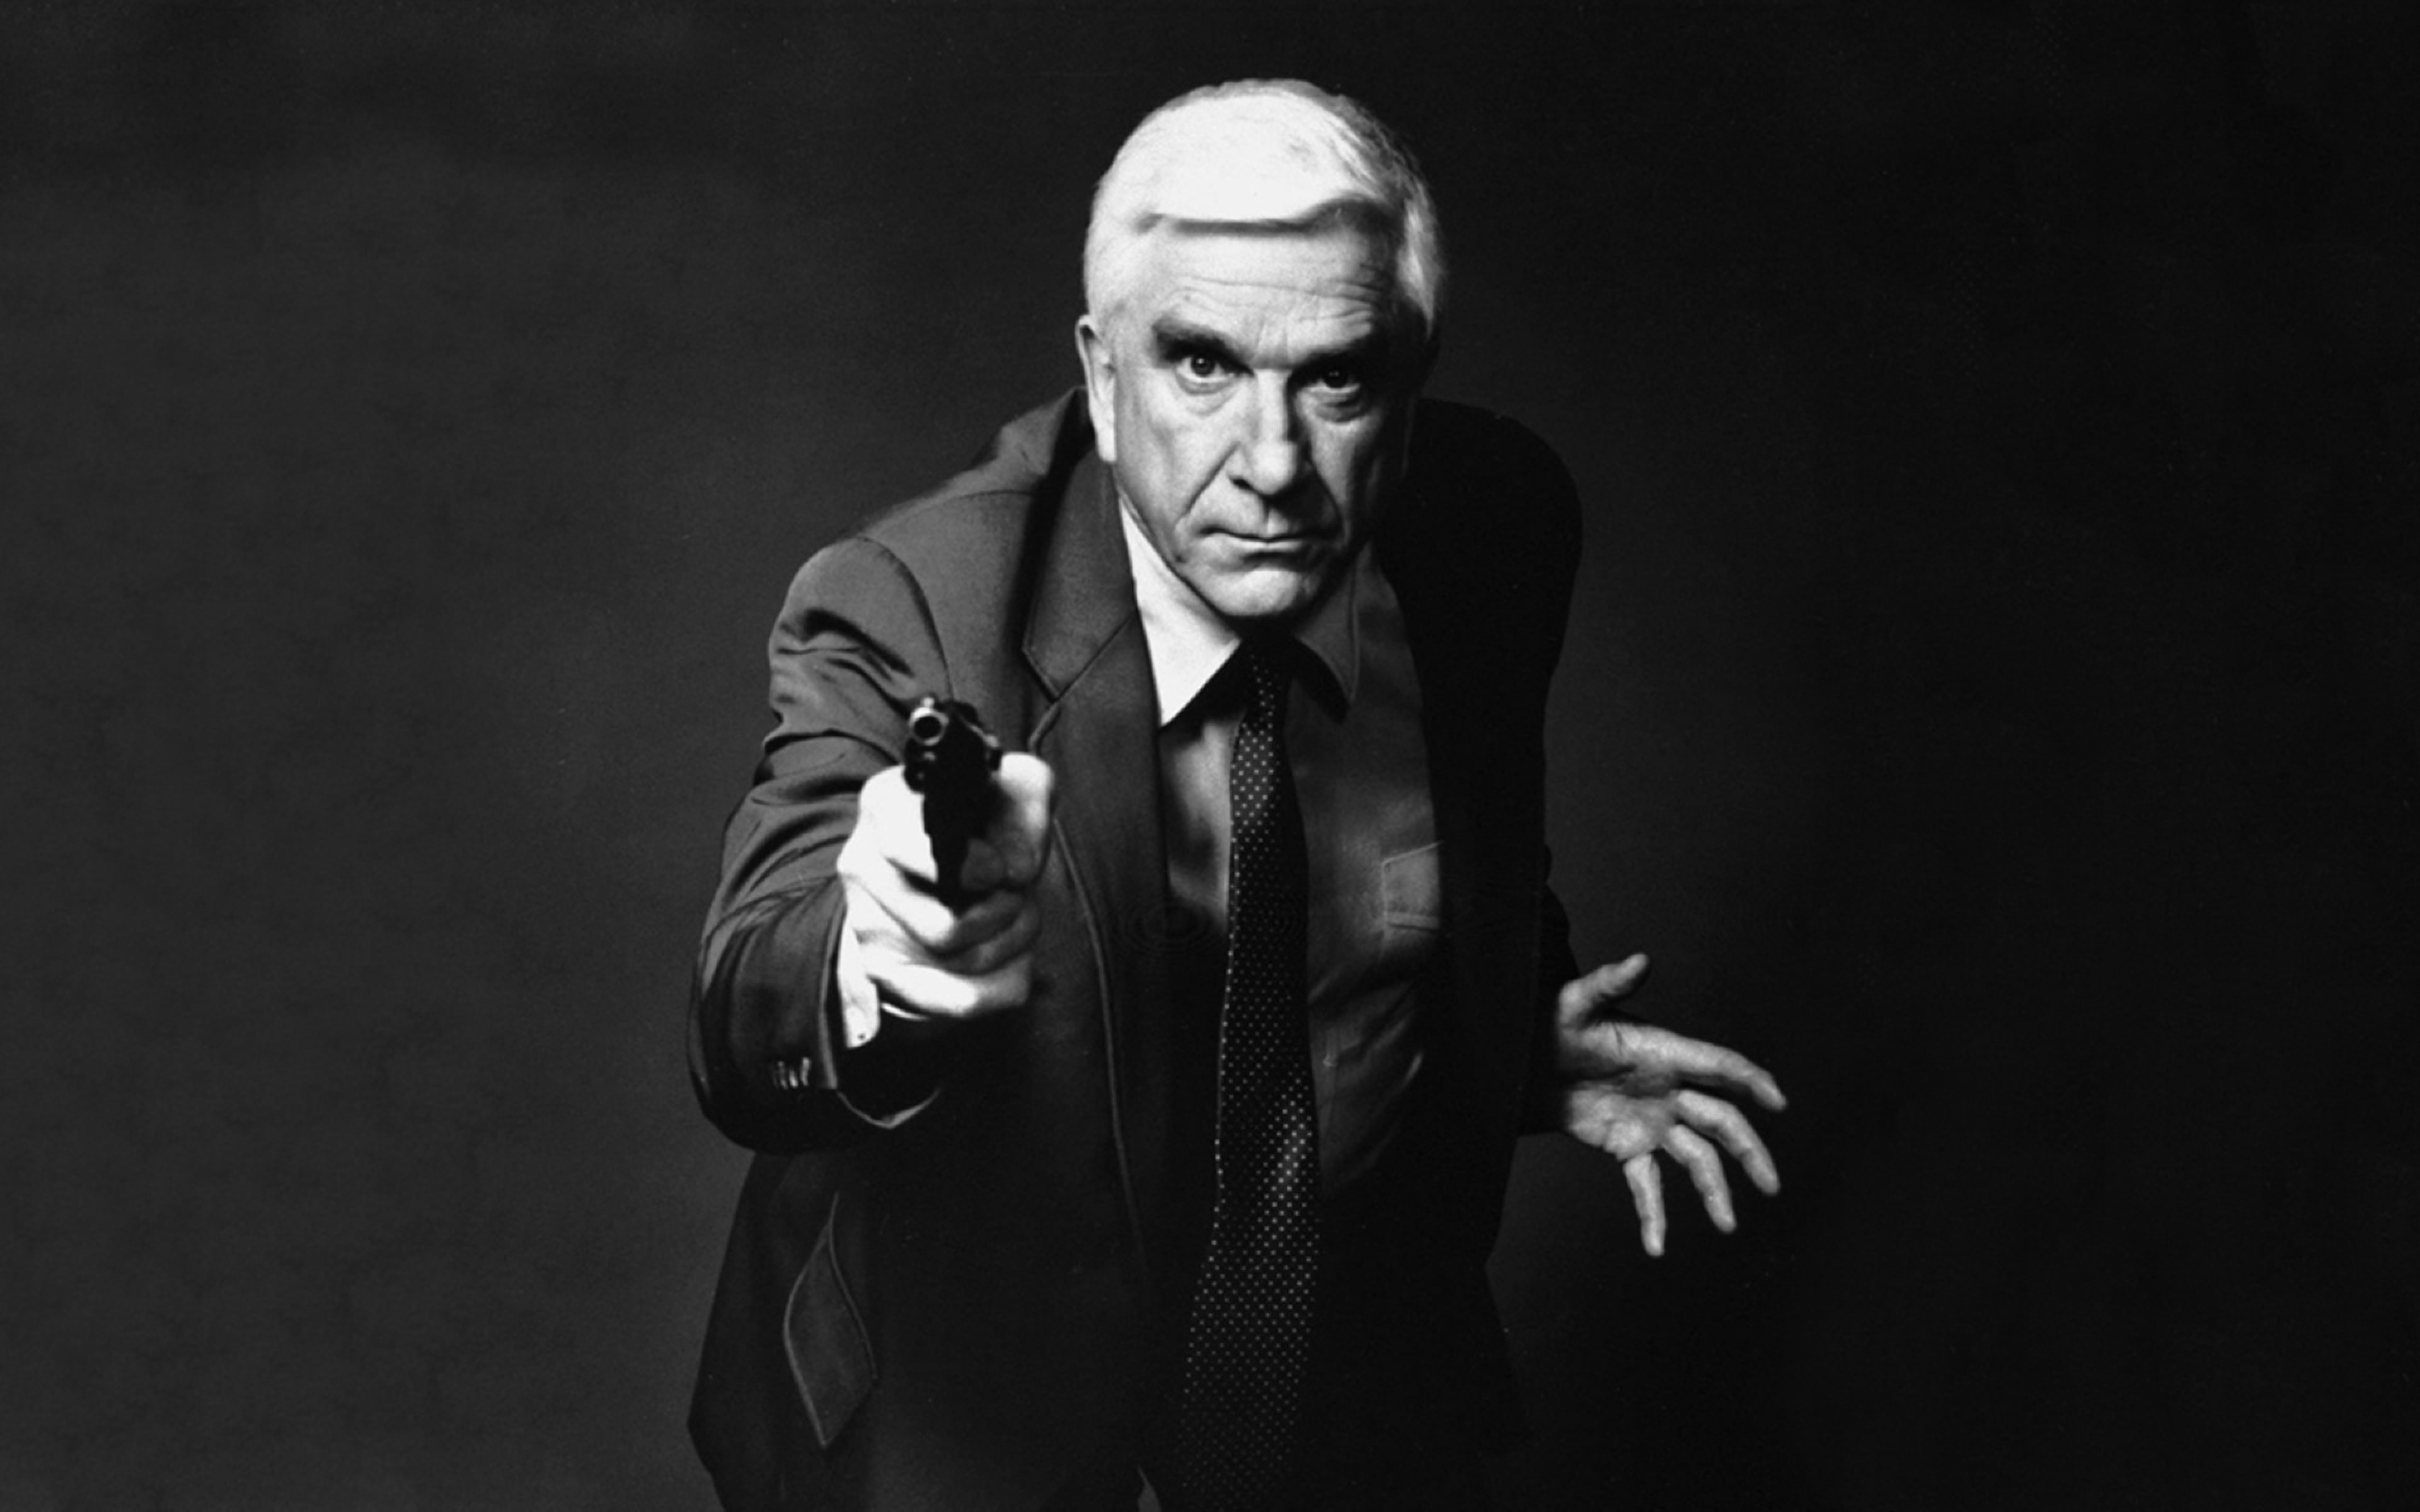 Leslie Nielsen Desktop wallpapers